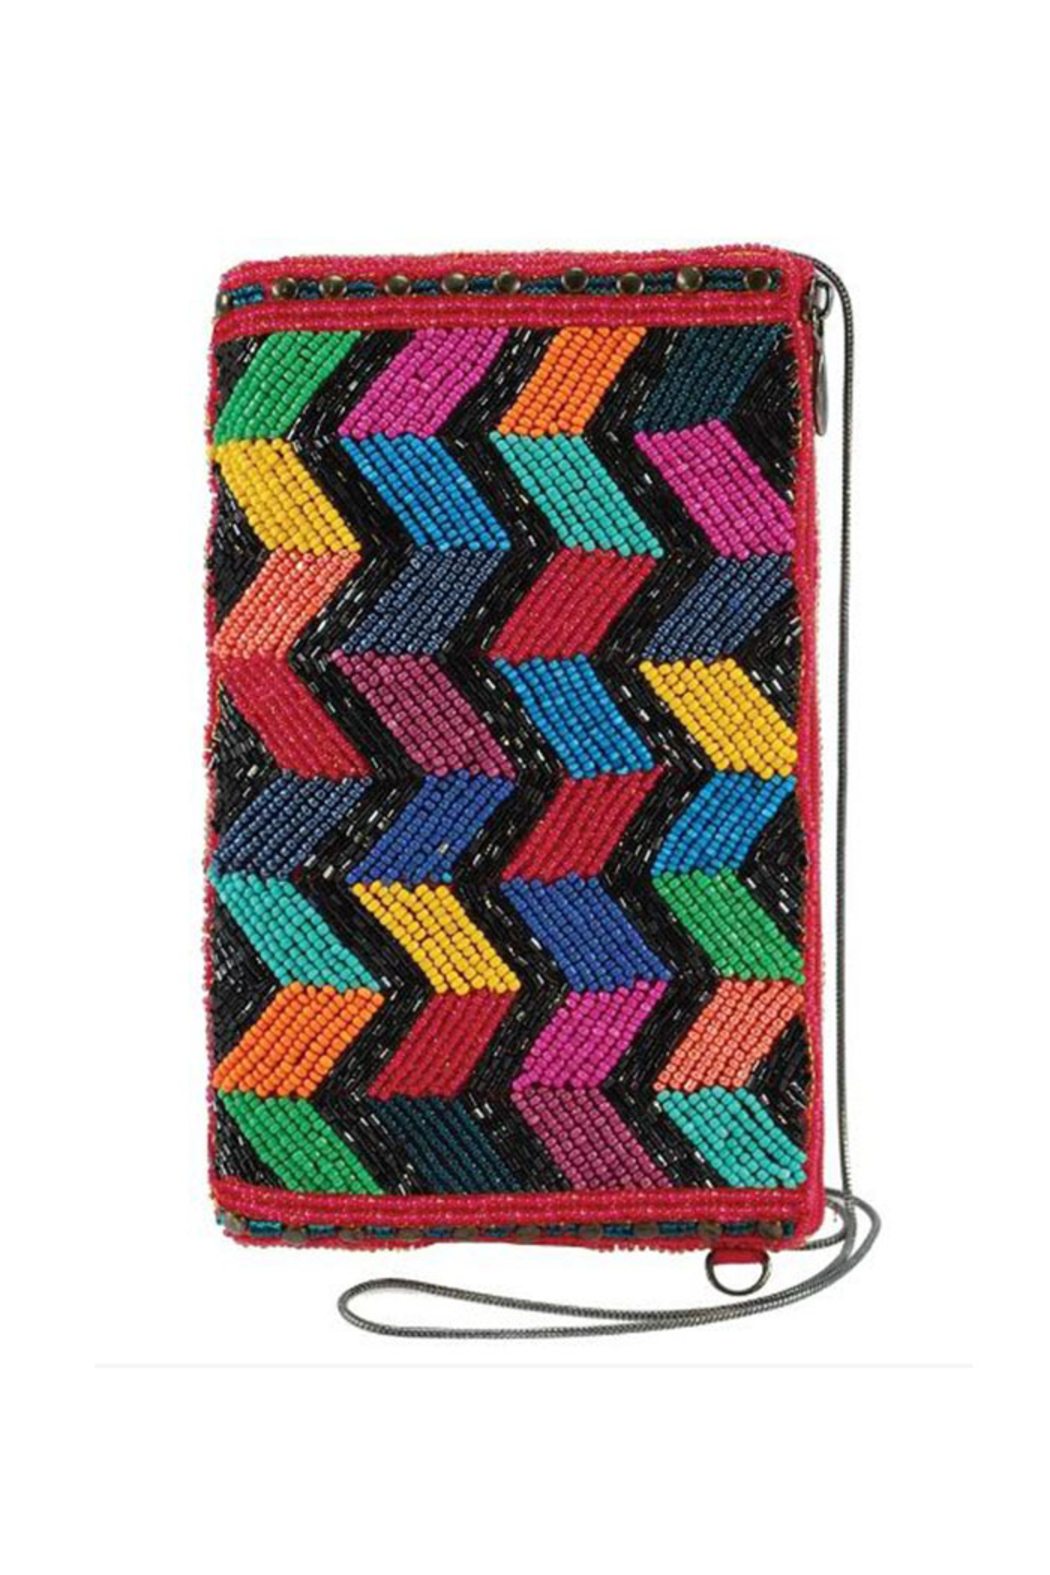 Mary Frances Accessories Zig Zag Black Beaded Chevron Pattern Crossbody Phone Bag - Main Image